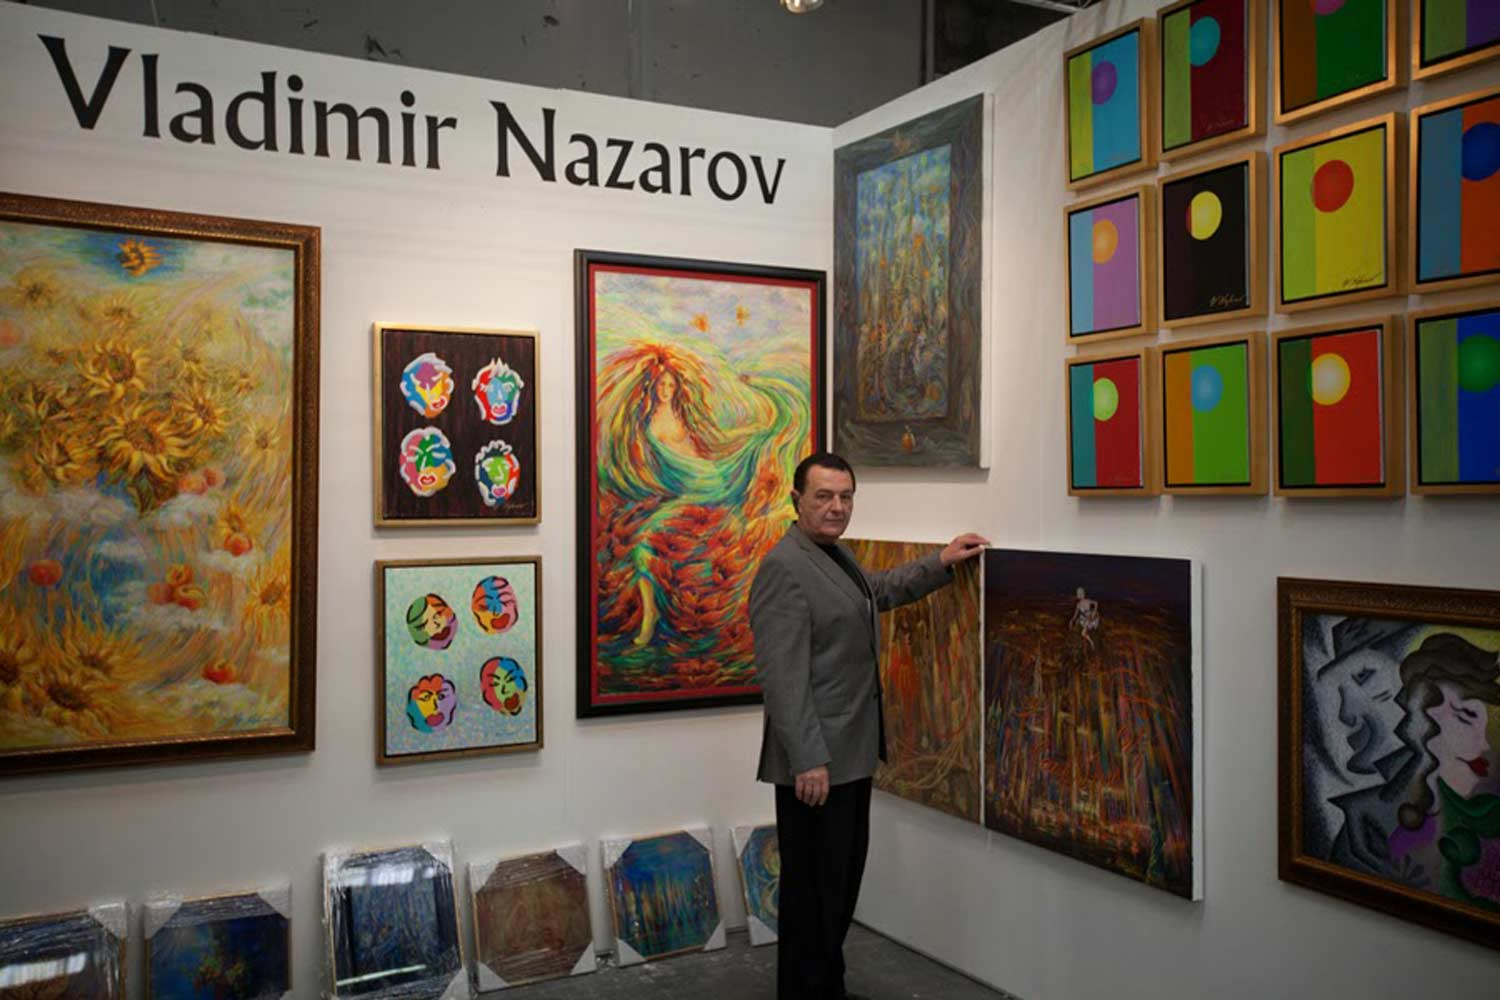 Vladimir Nazarov Exhibition Art Expo New York 2014